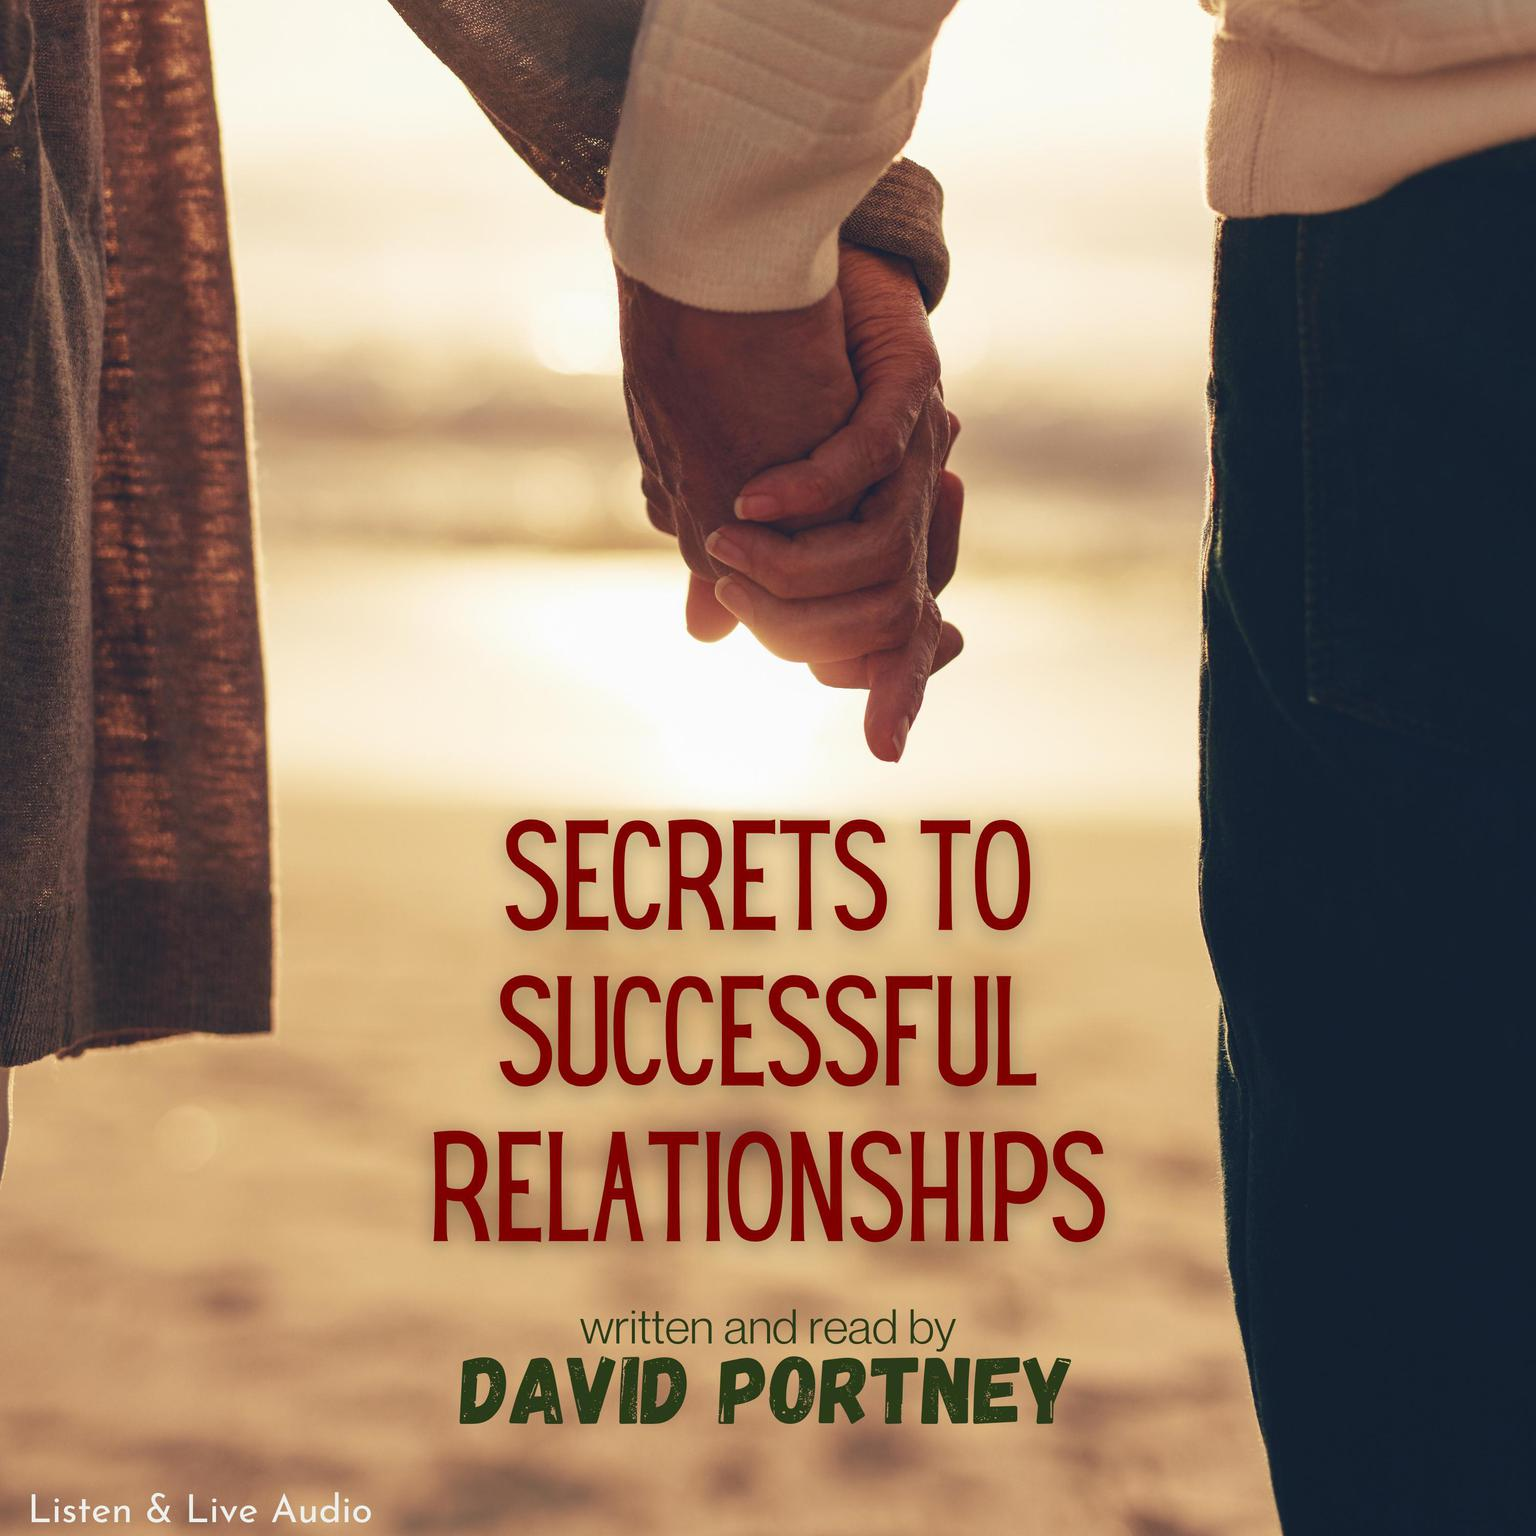 Dating tips for a successful relationship